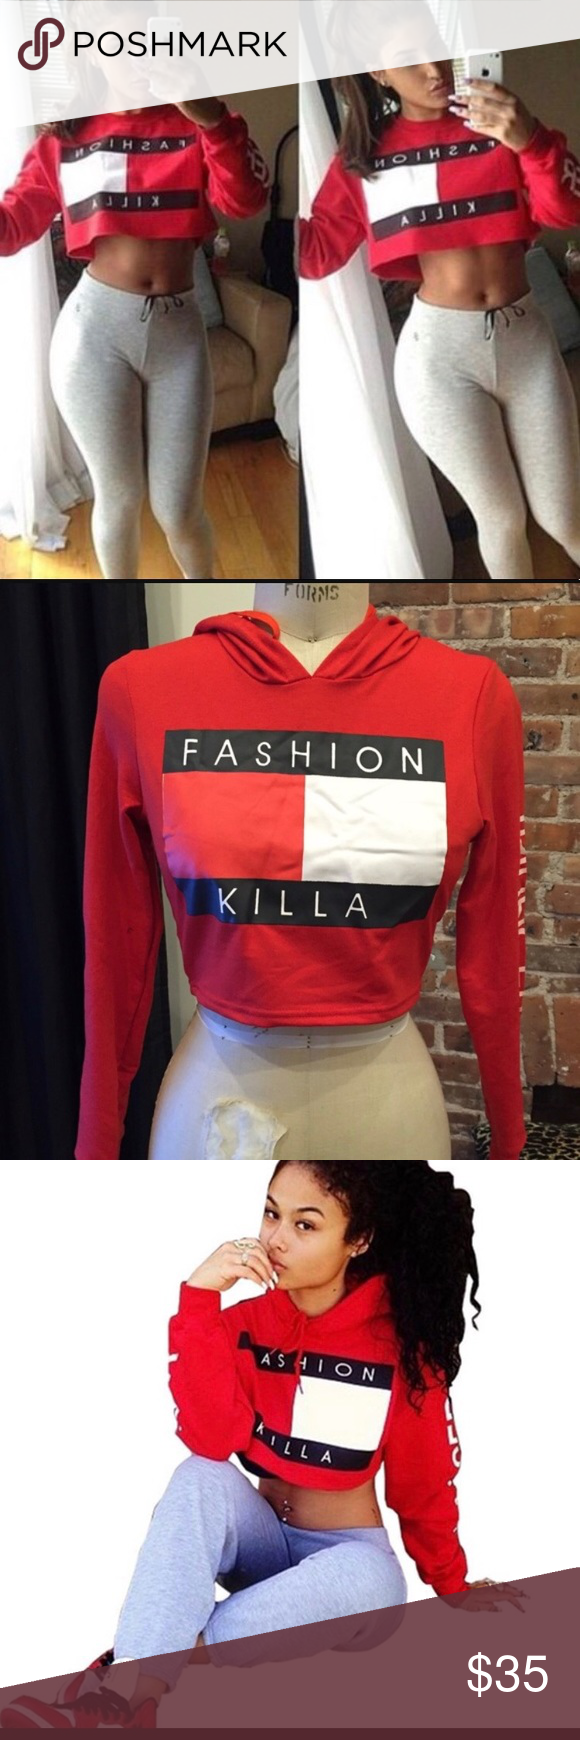 236395bbf1f33 Fashion killa cropped hoodie small and medium Fashion killa cropped hoodie  it is a size medium